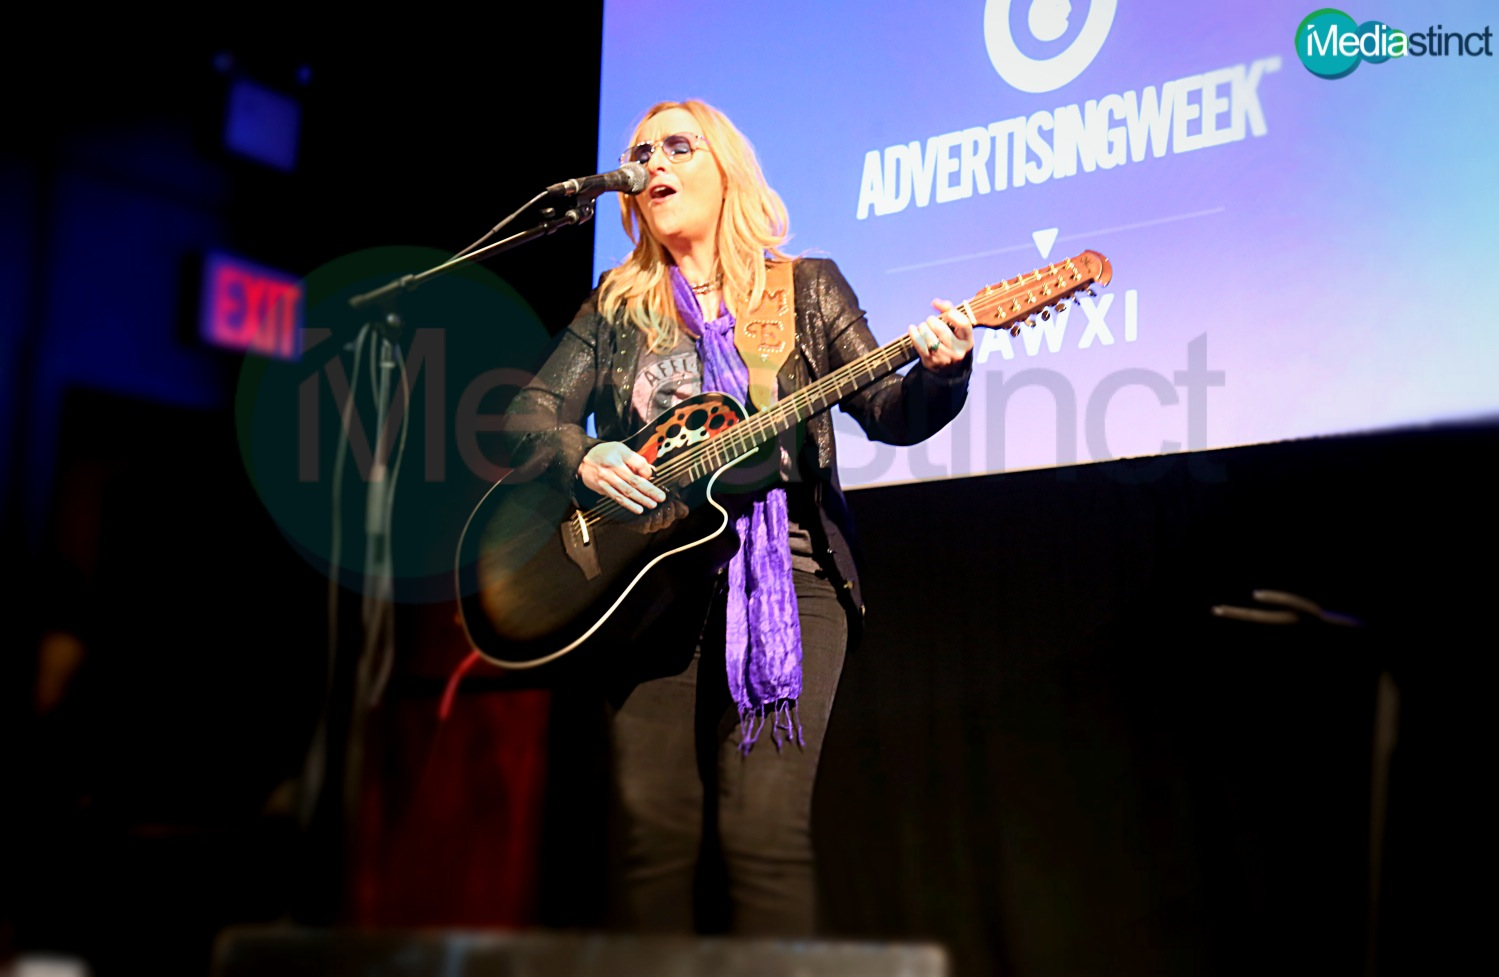 Melissa-Etheridge_Advertising-Week-2014_Mediastinct™-1